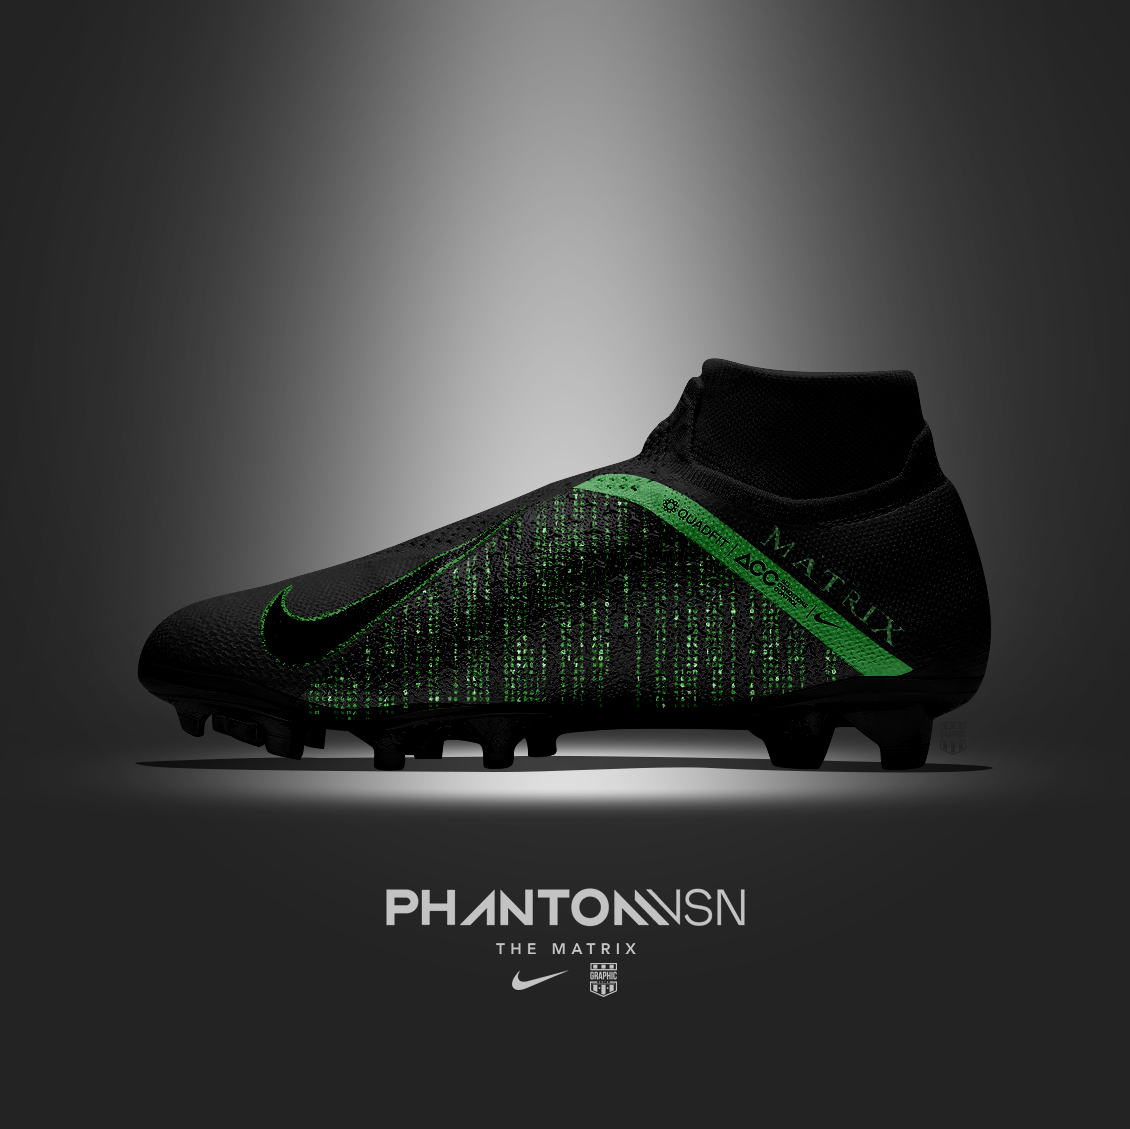 nike-phantom-vision-7eme-art-graphic-united-matric